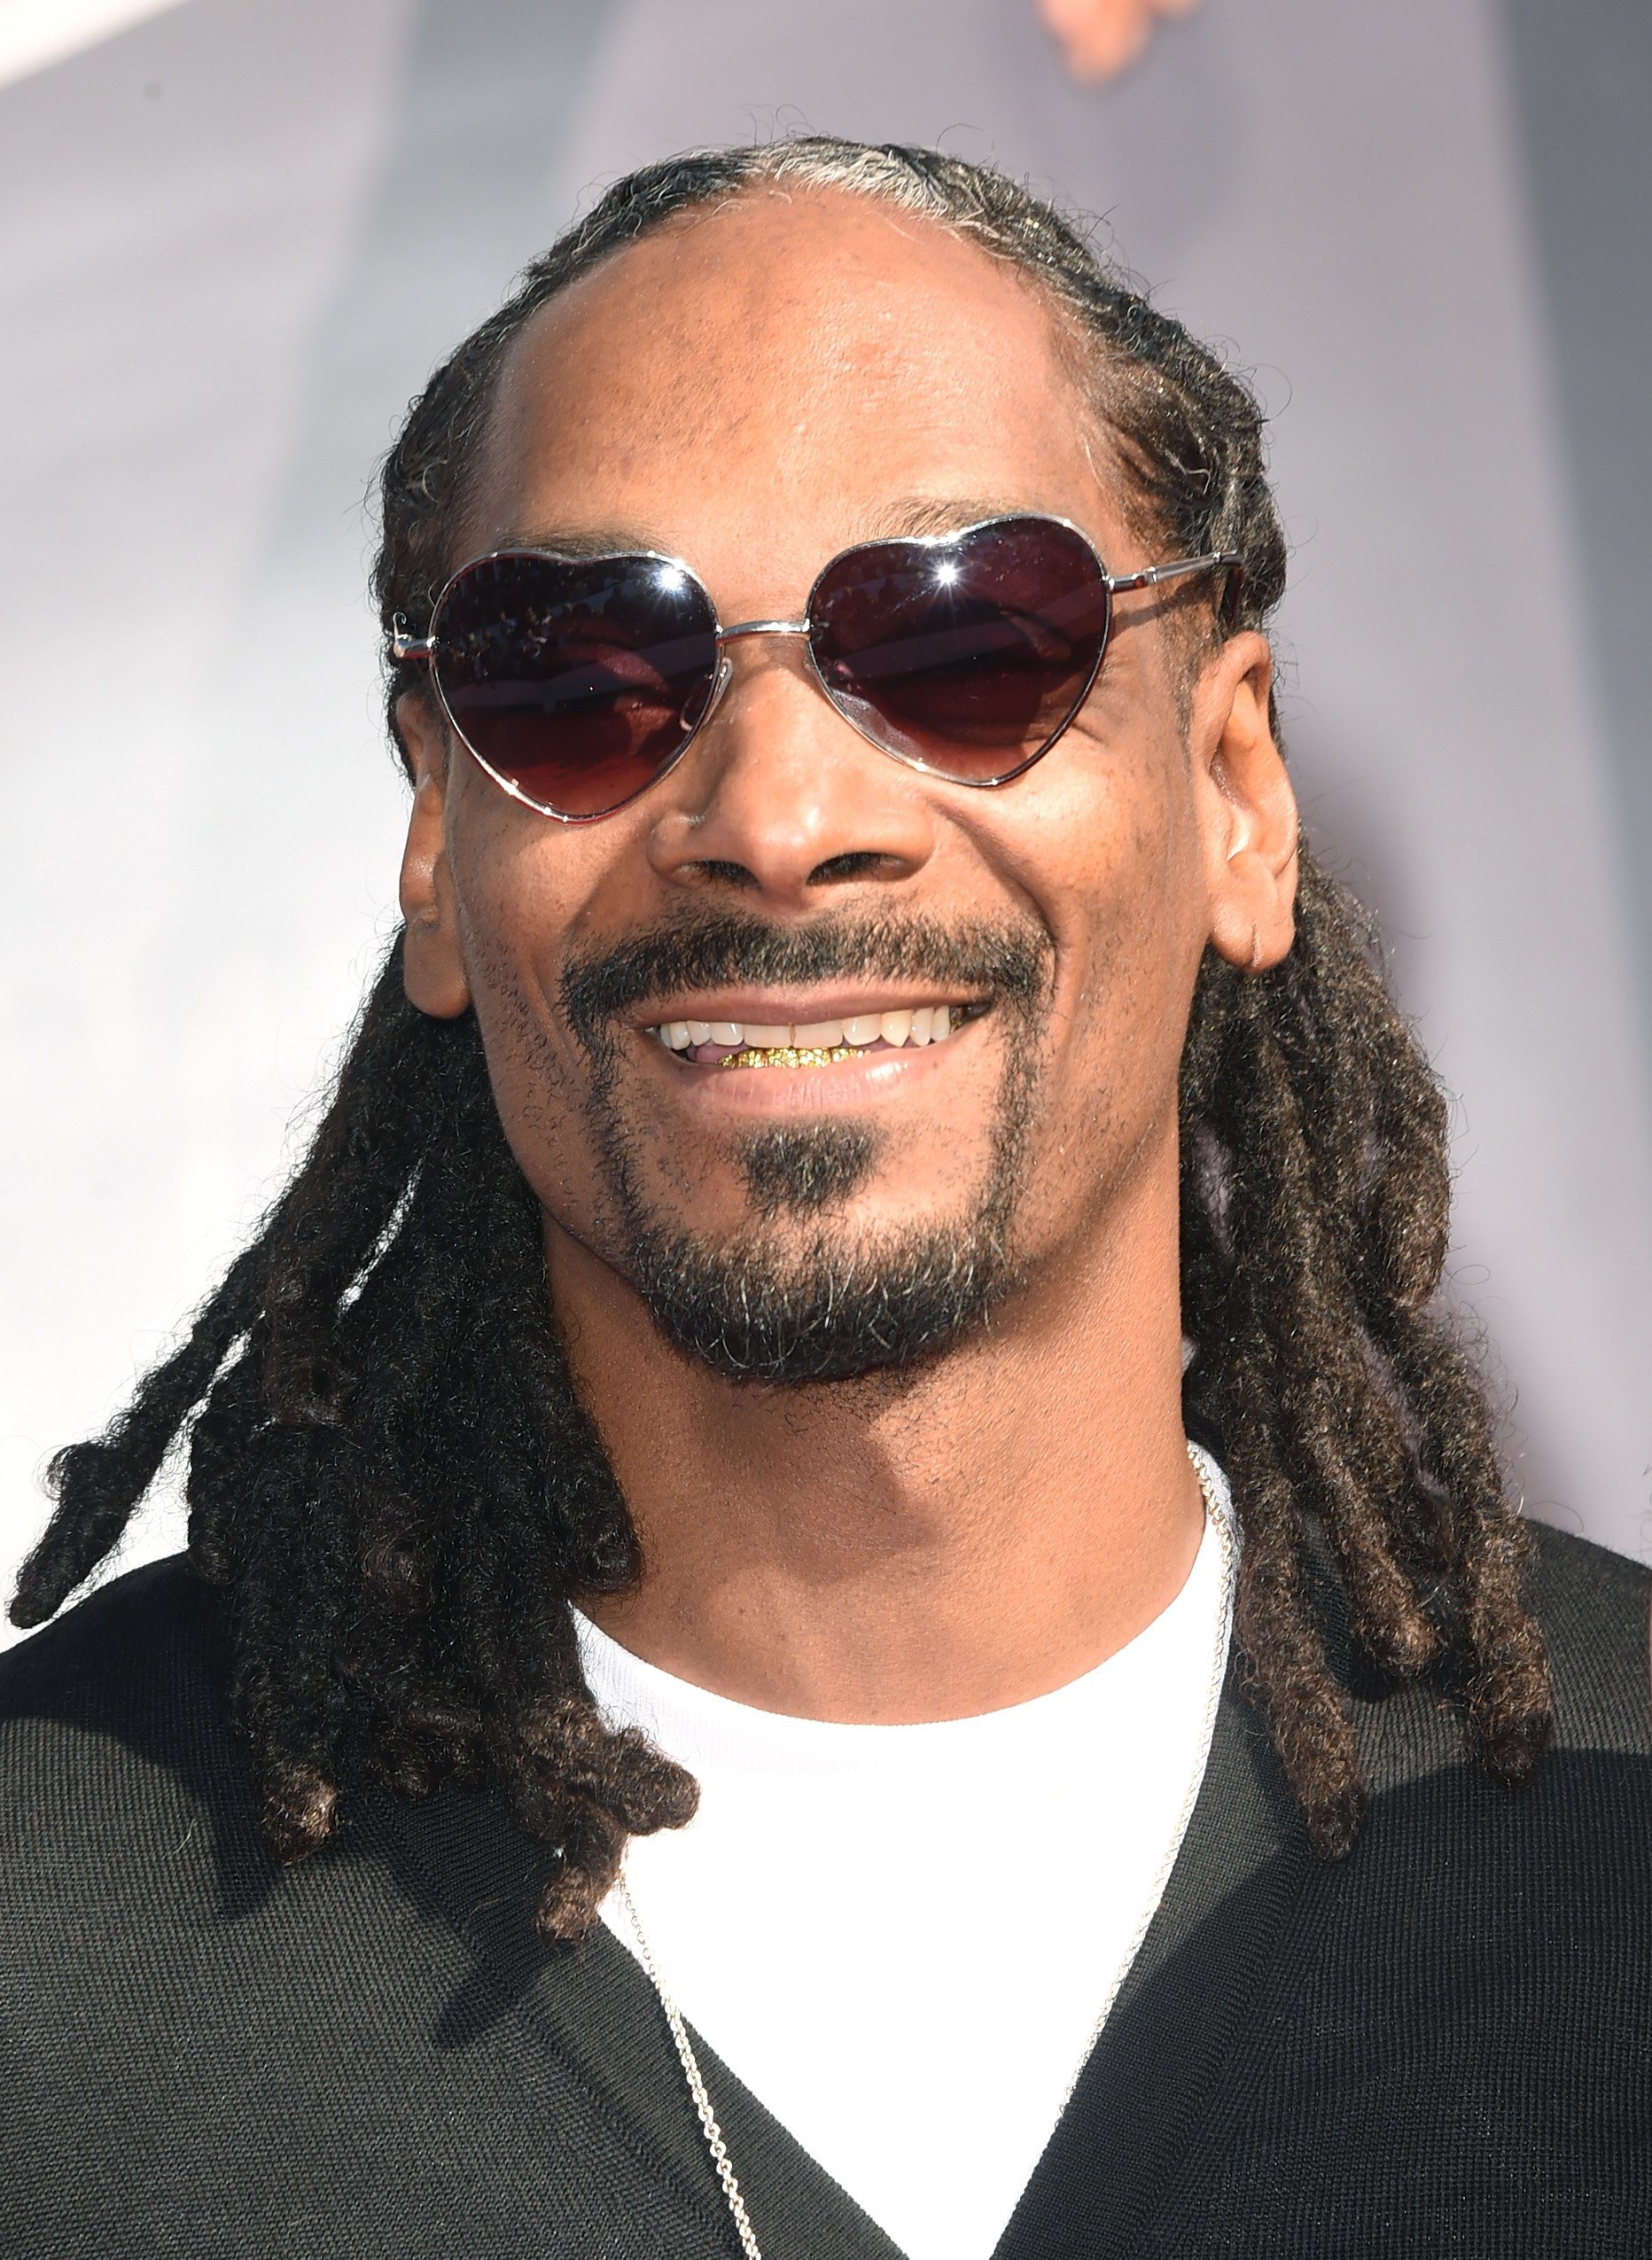 Snoop Dogg at the MTV Video Music Awards on Aug. 24, 2014 in California | Photo: Getty Images